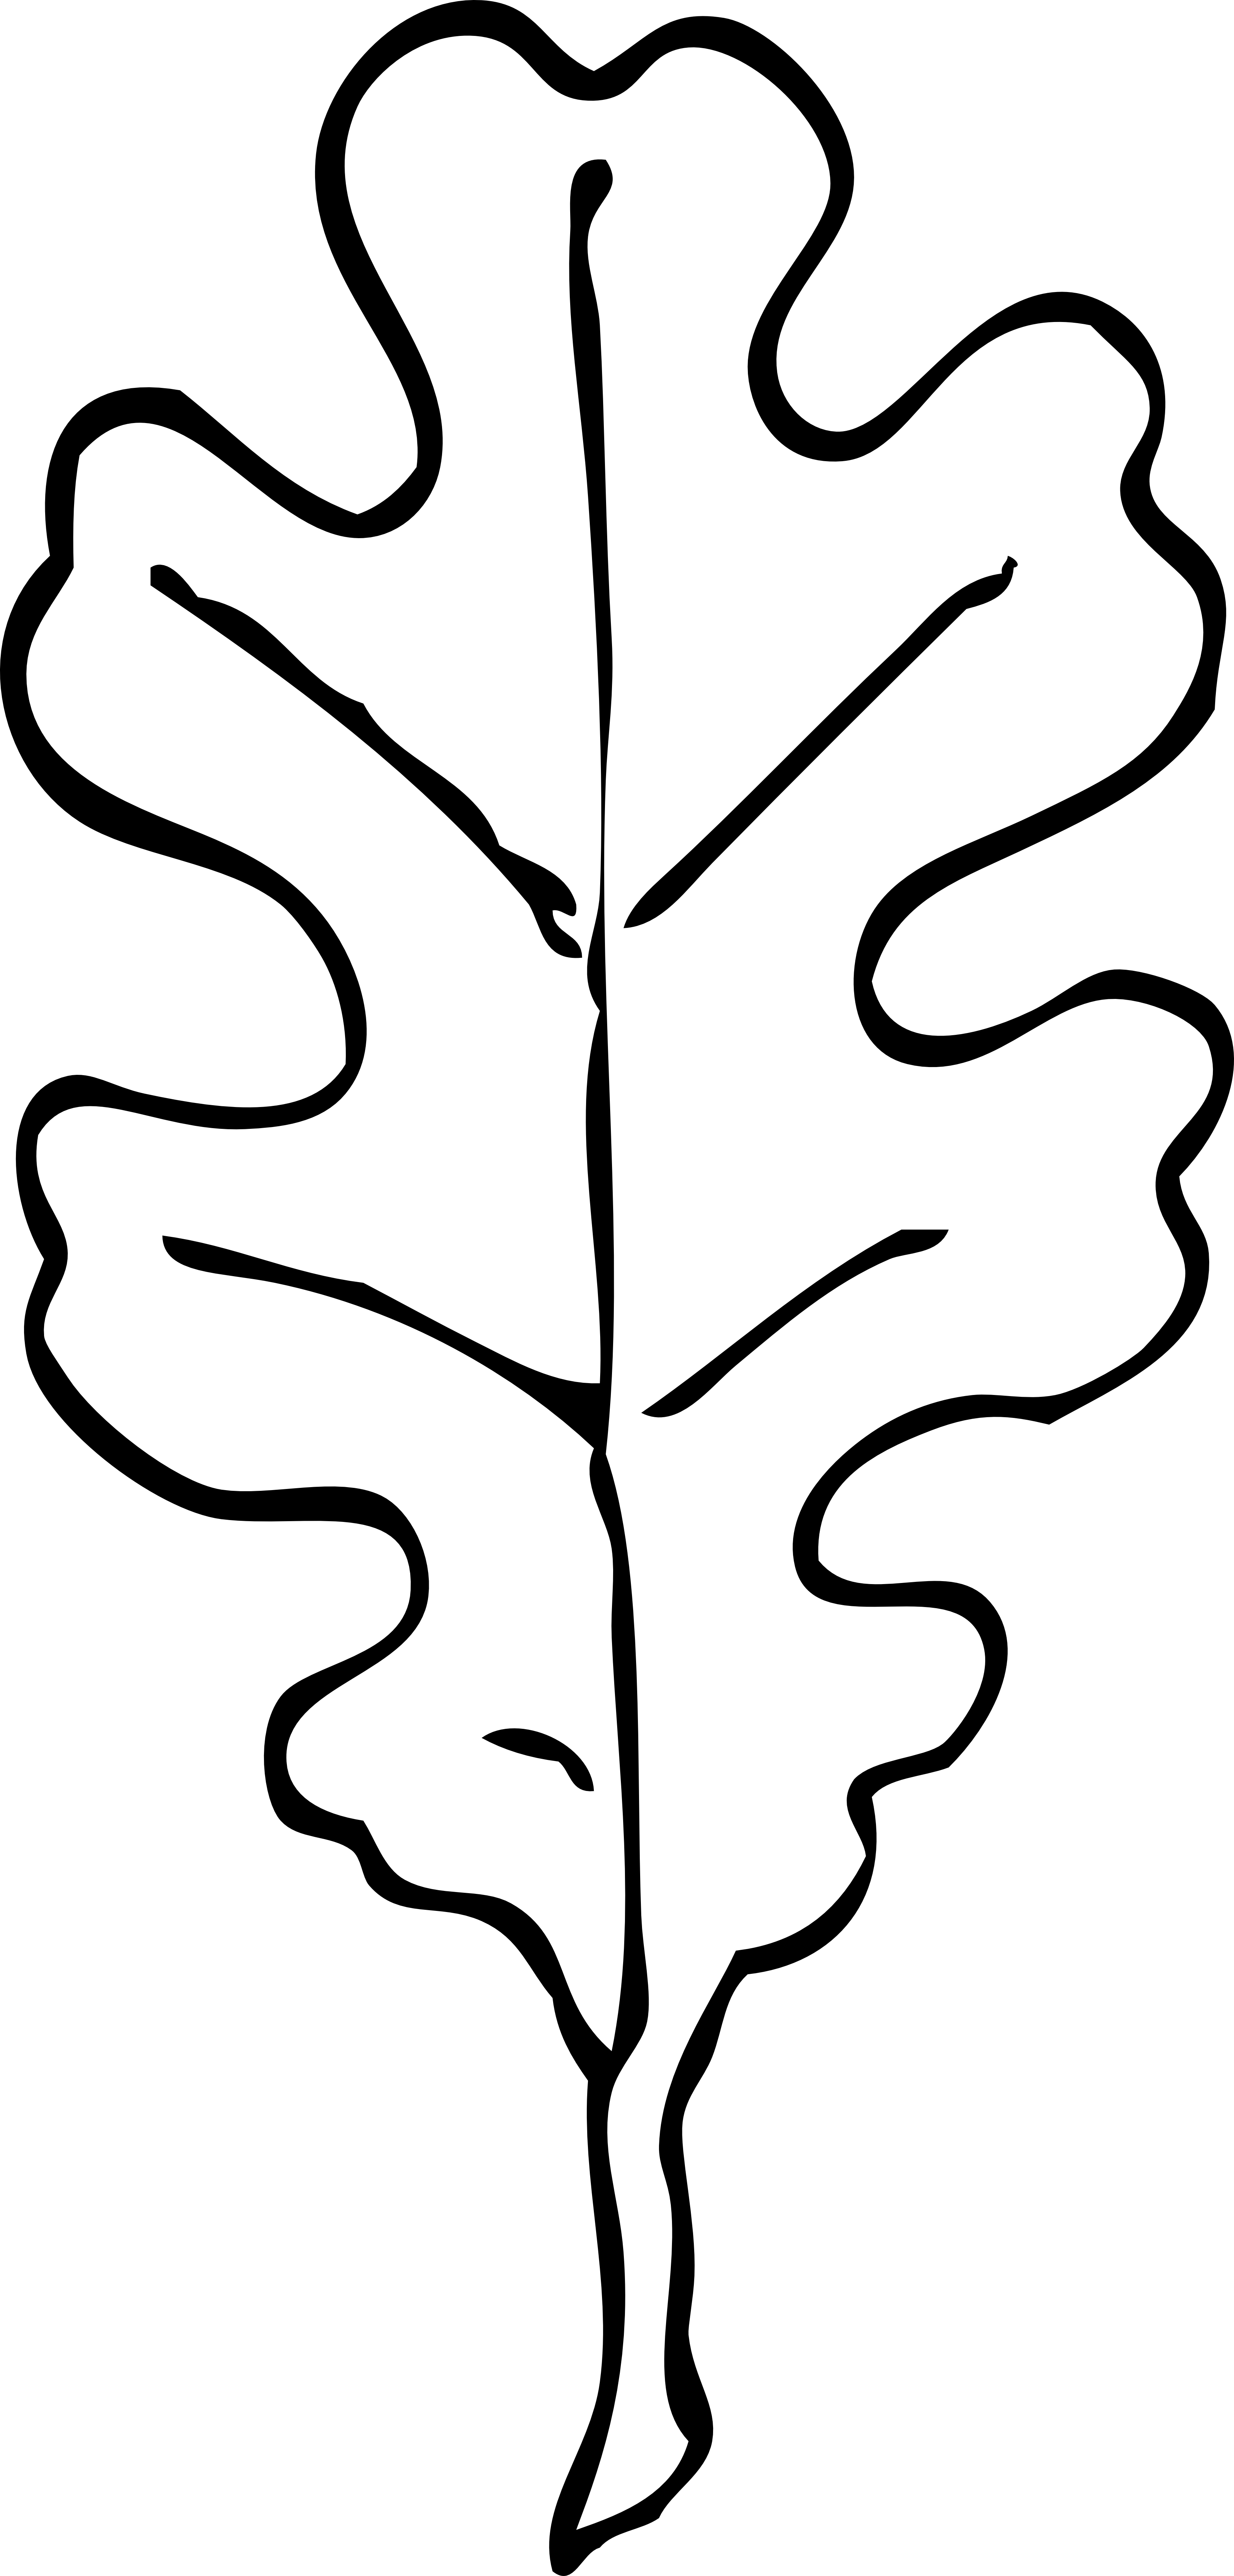 Black And White Leaves Clipart.